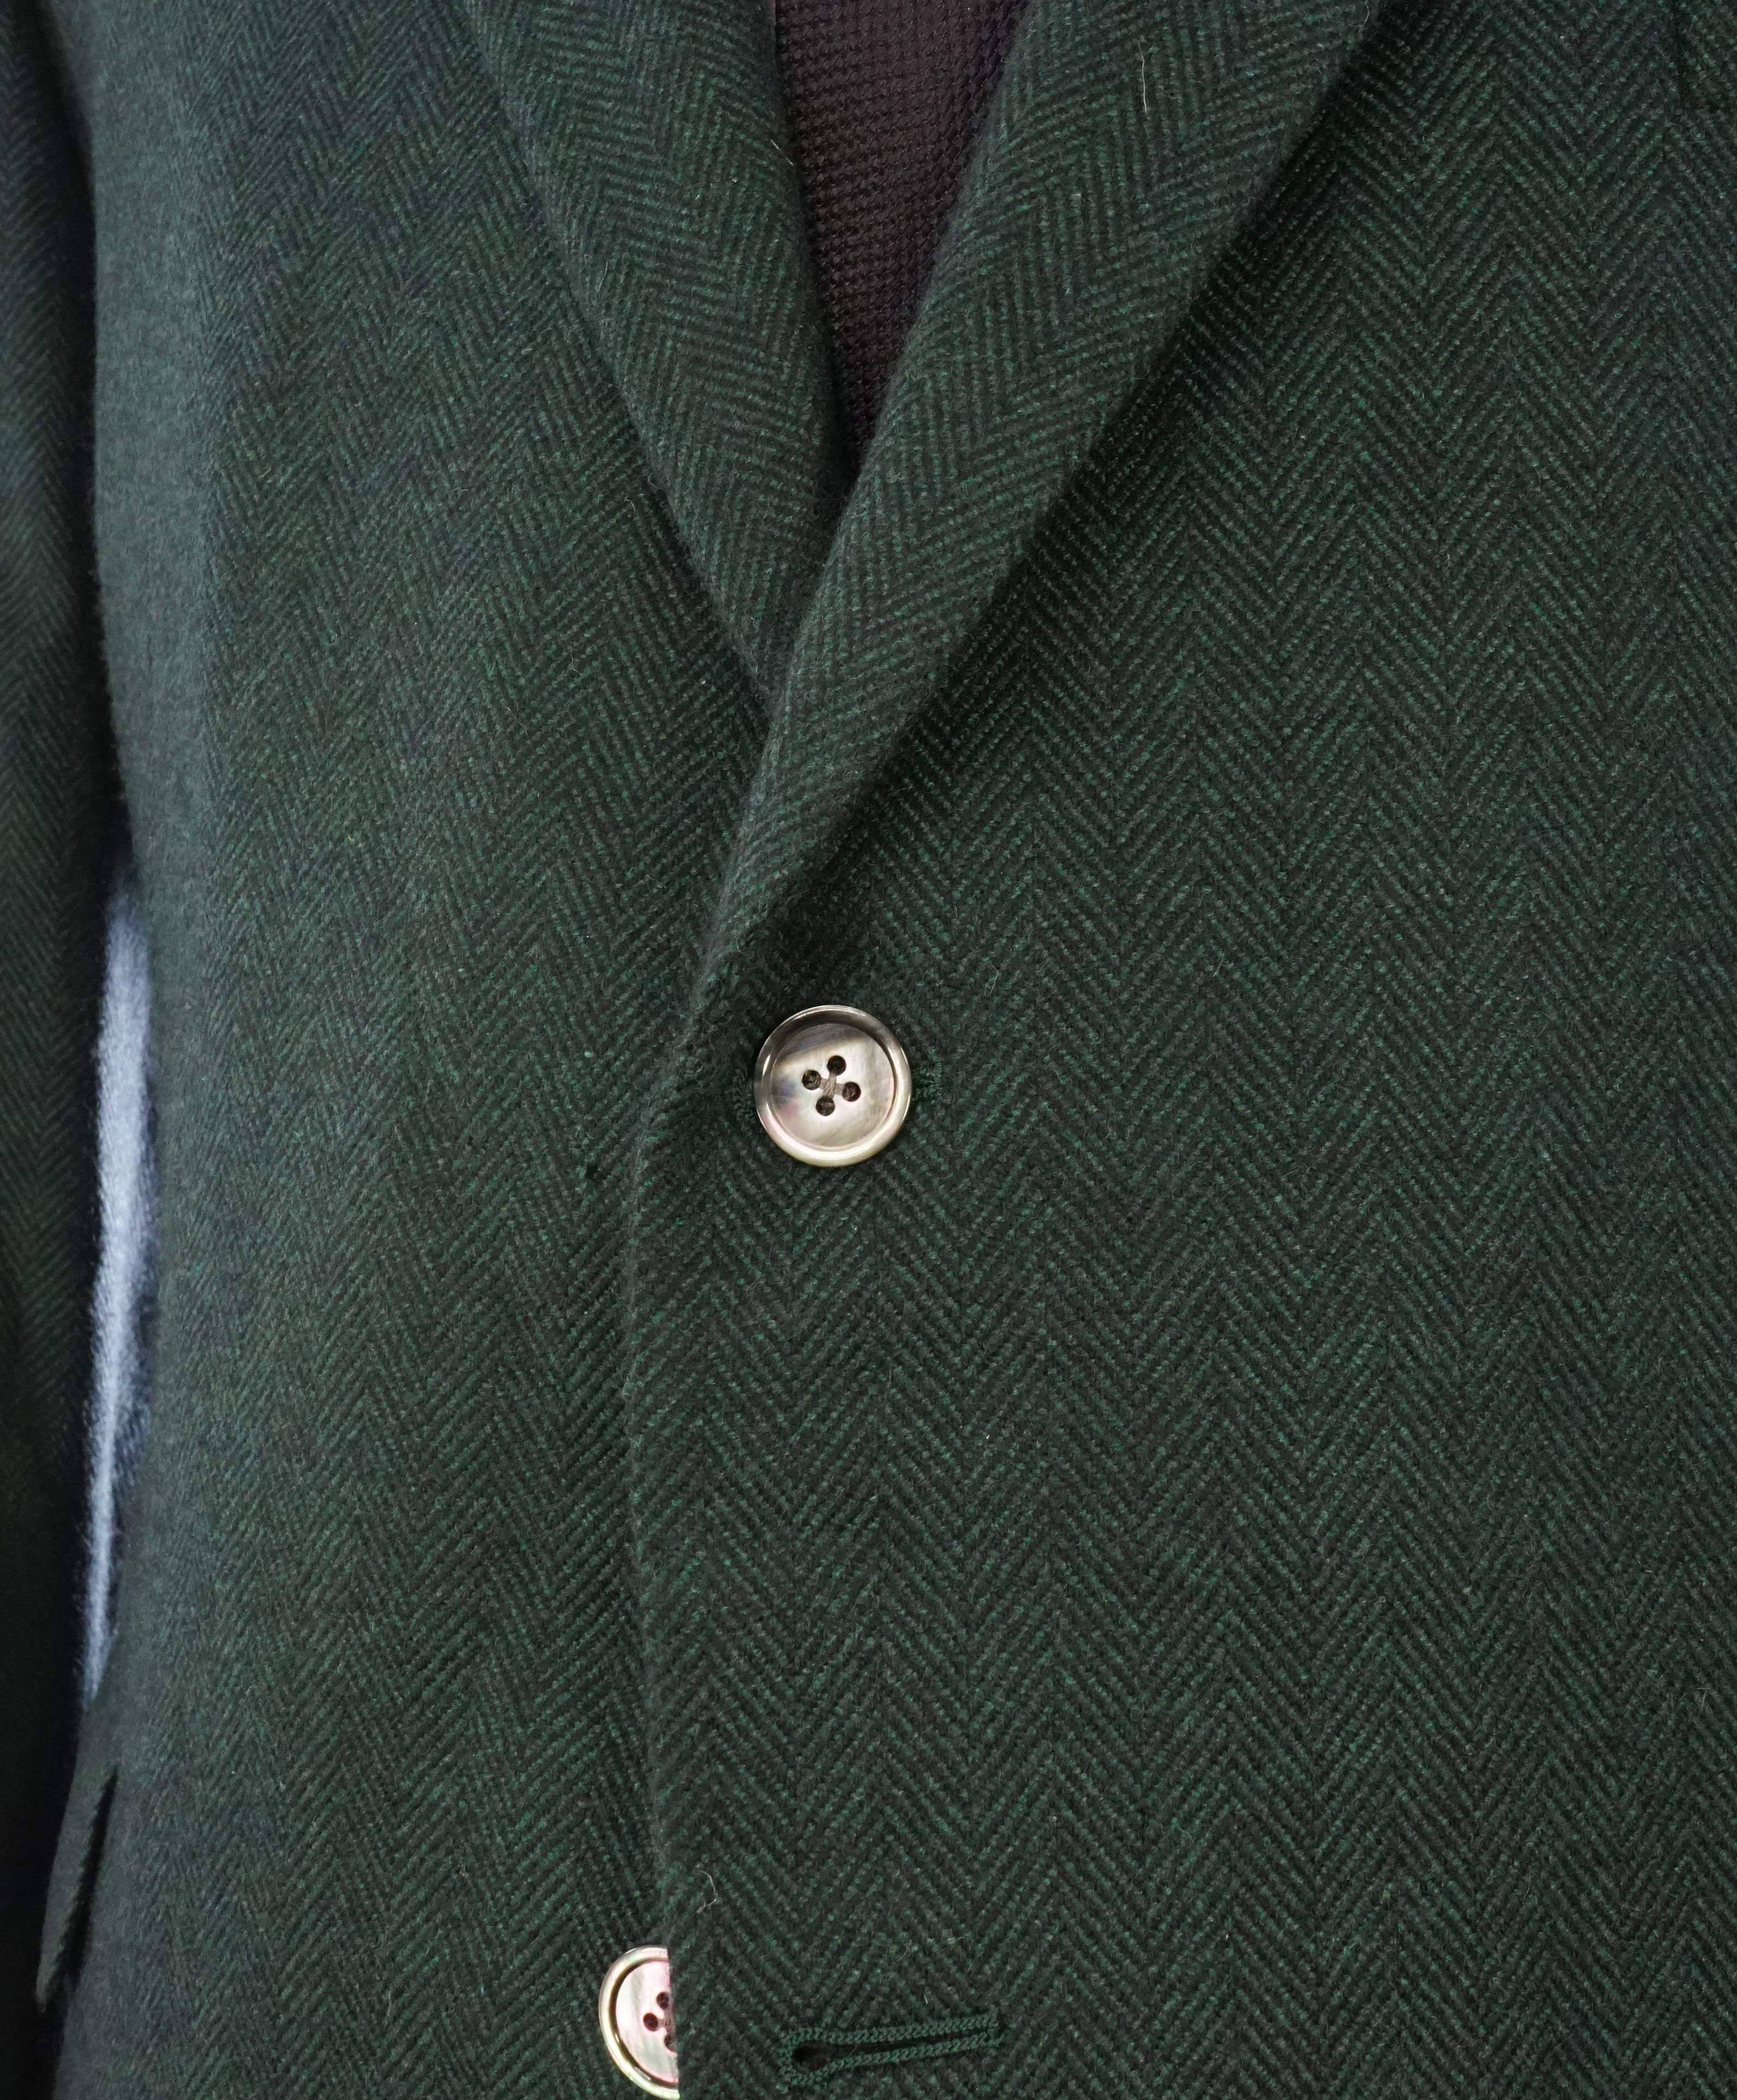 HICKEY FREEMAN -CARLO BARBERA PURE CASHMERE Green Herringbone Suit- 46S